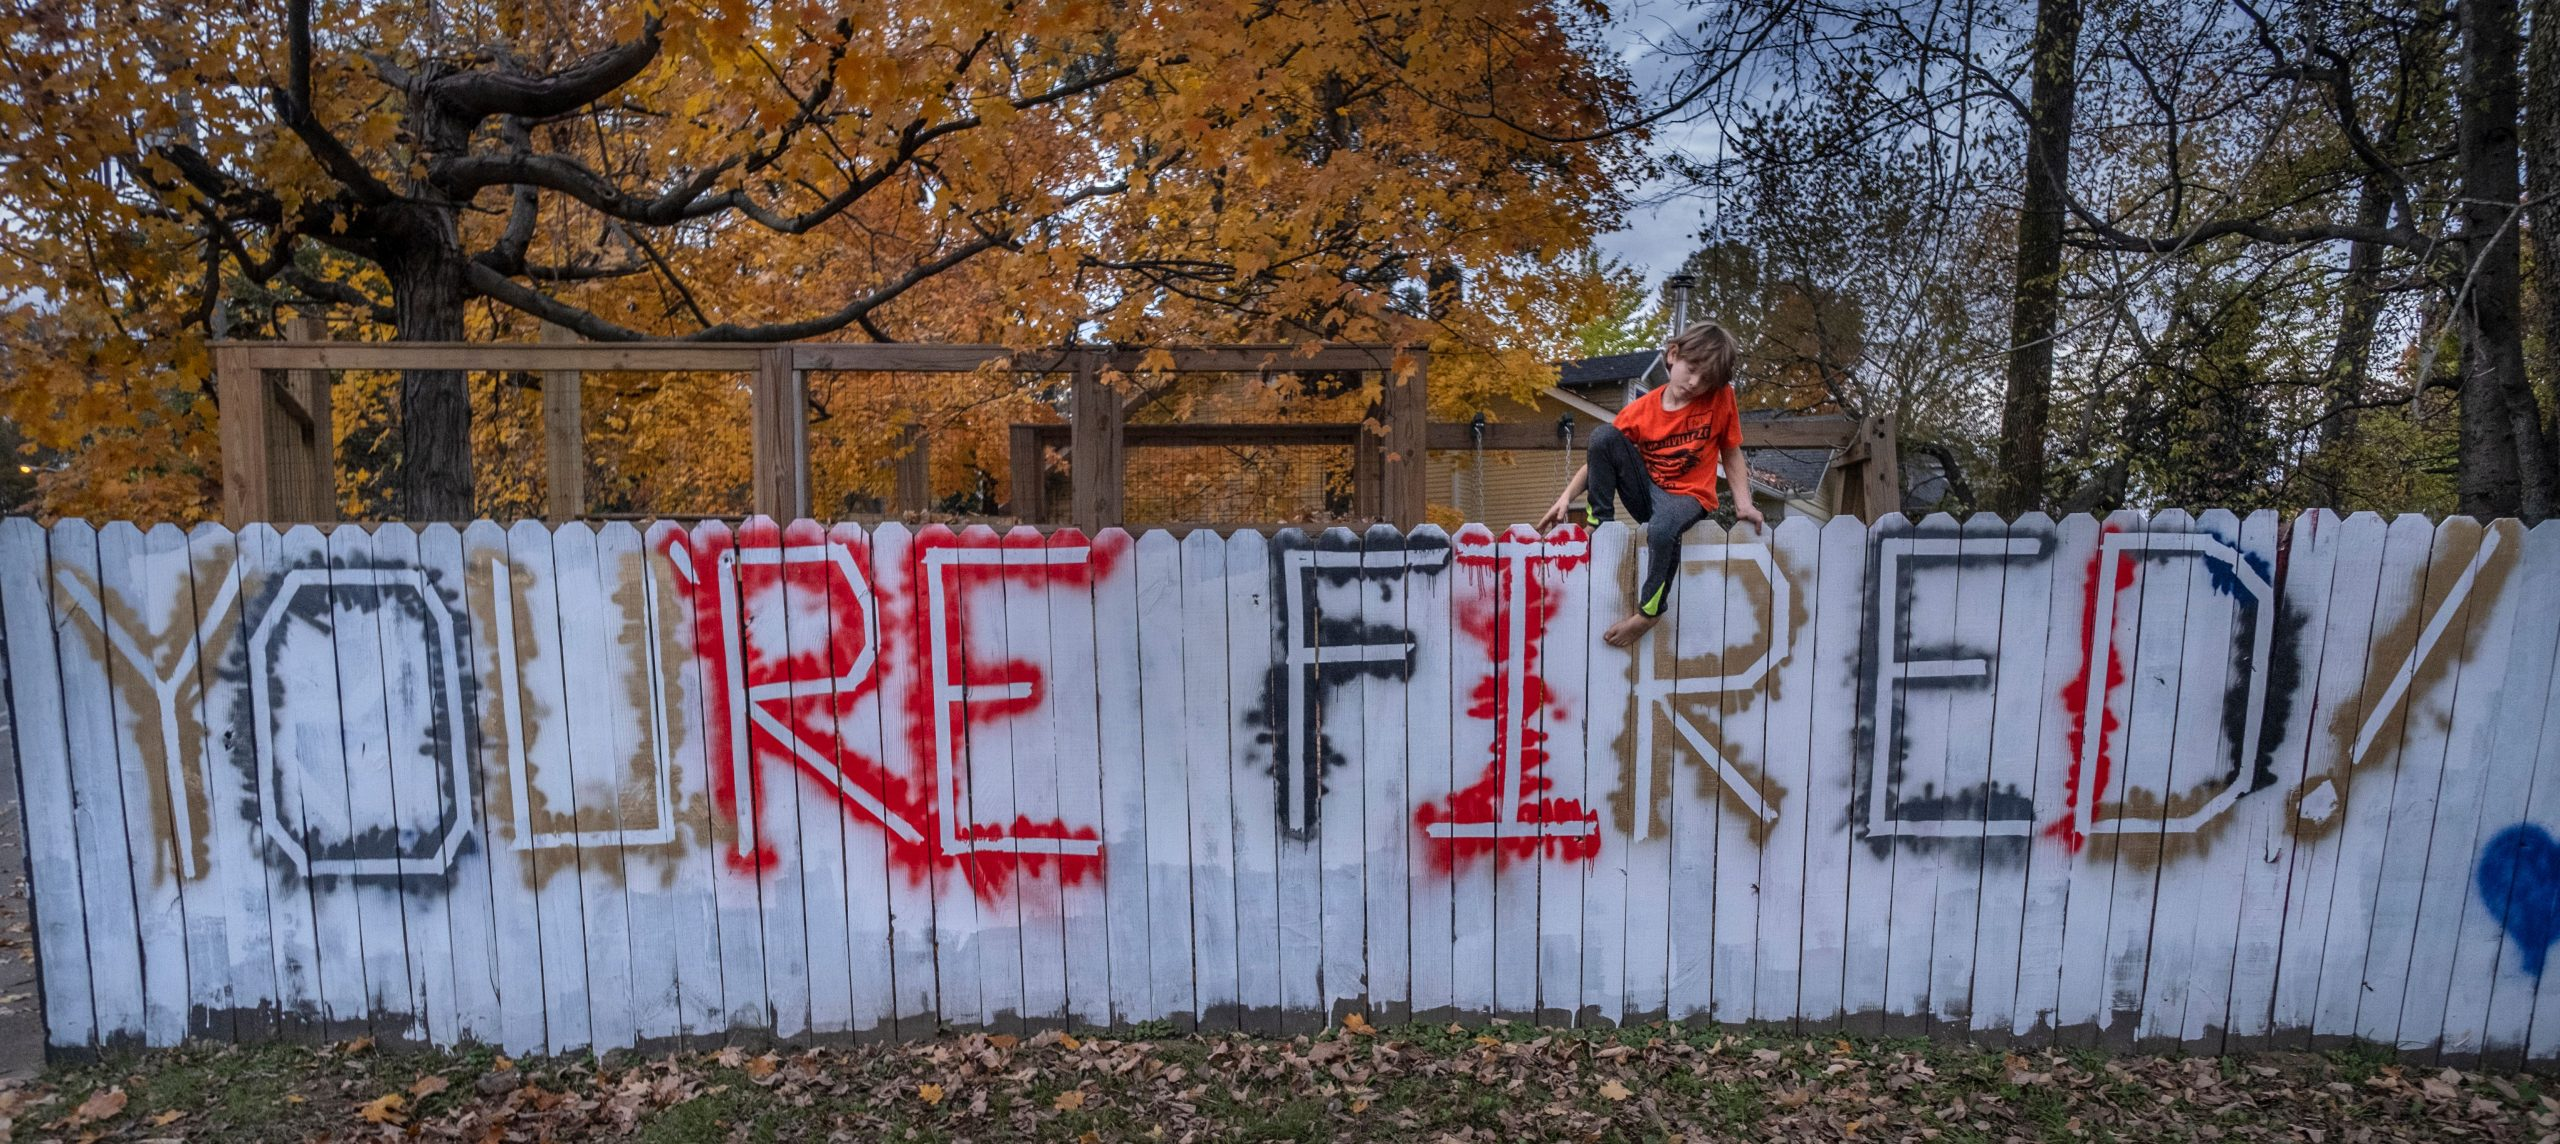 Arlo Suiker,8, sits on the fence at his home in East Nashville that he, mother Andrea Jacobs, father Colin and sister Ruby painted Saturday after Joe Biden became President-elect. (Photo: John Partipilo)